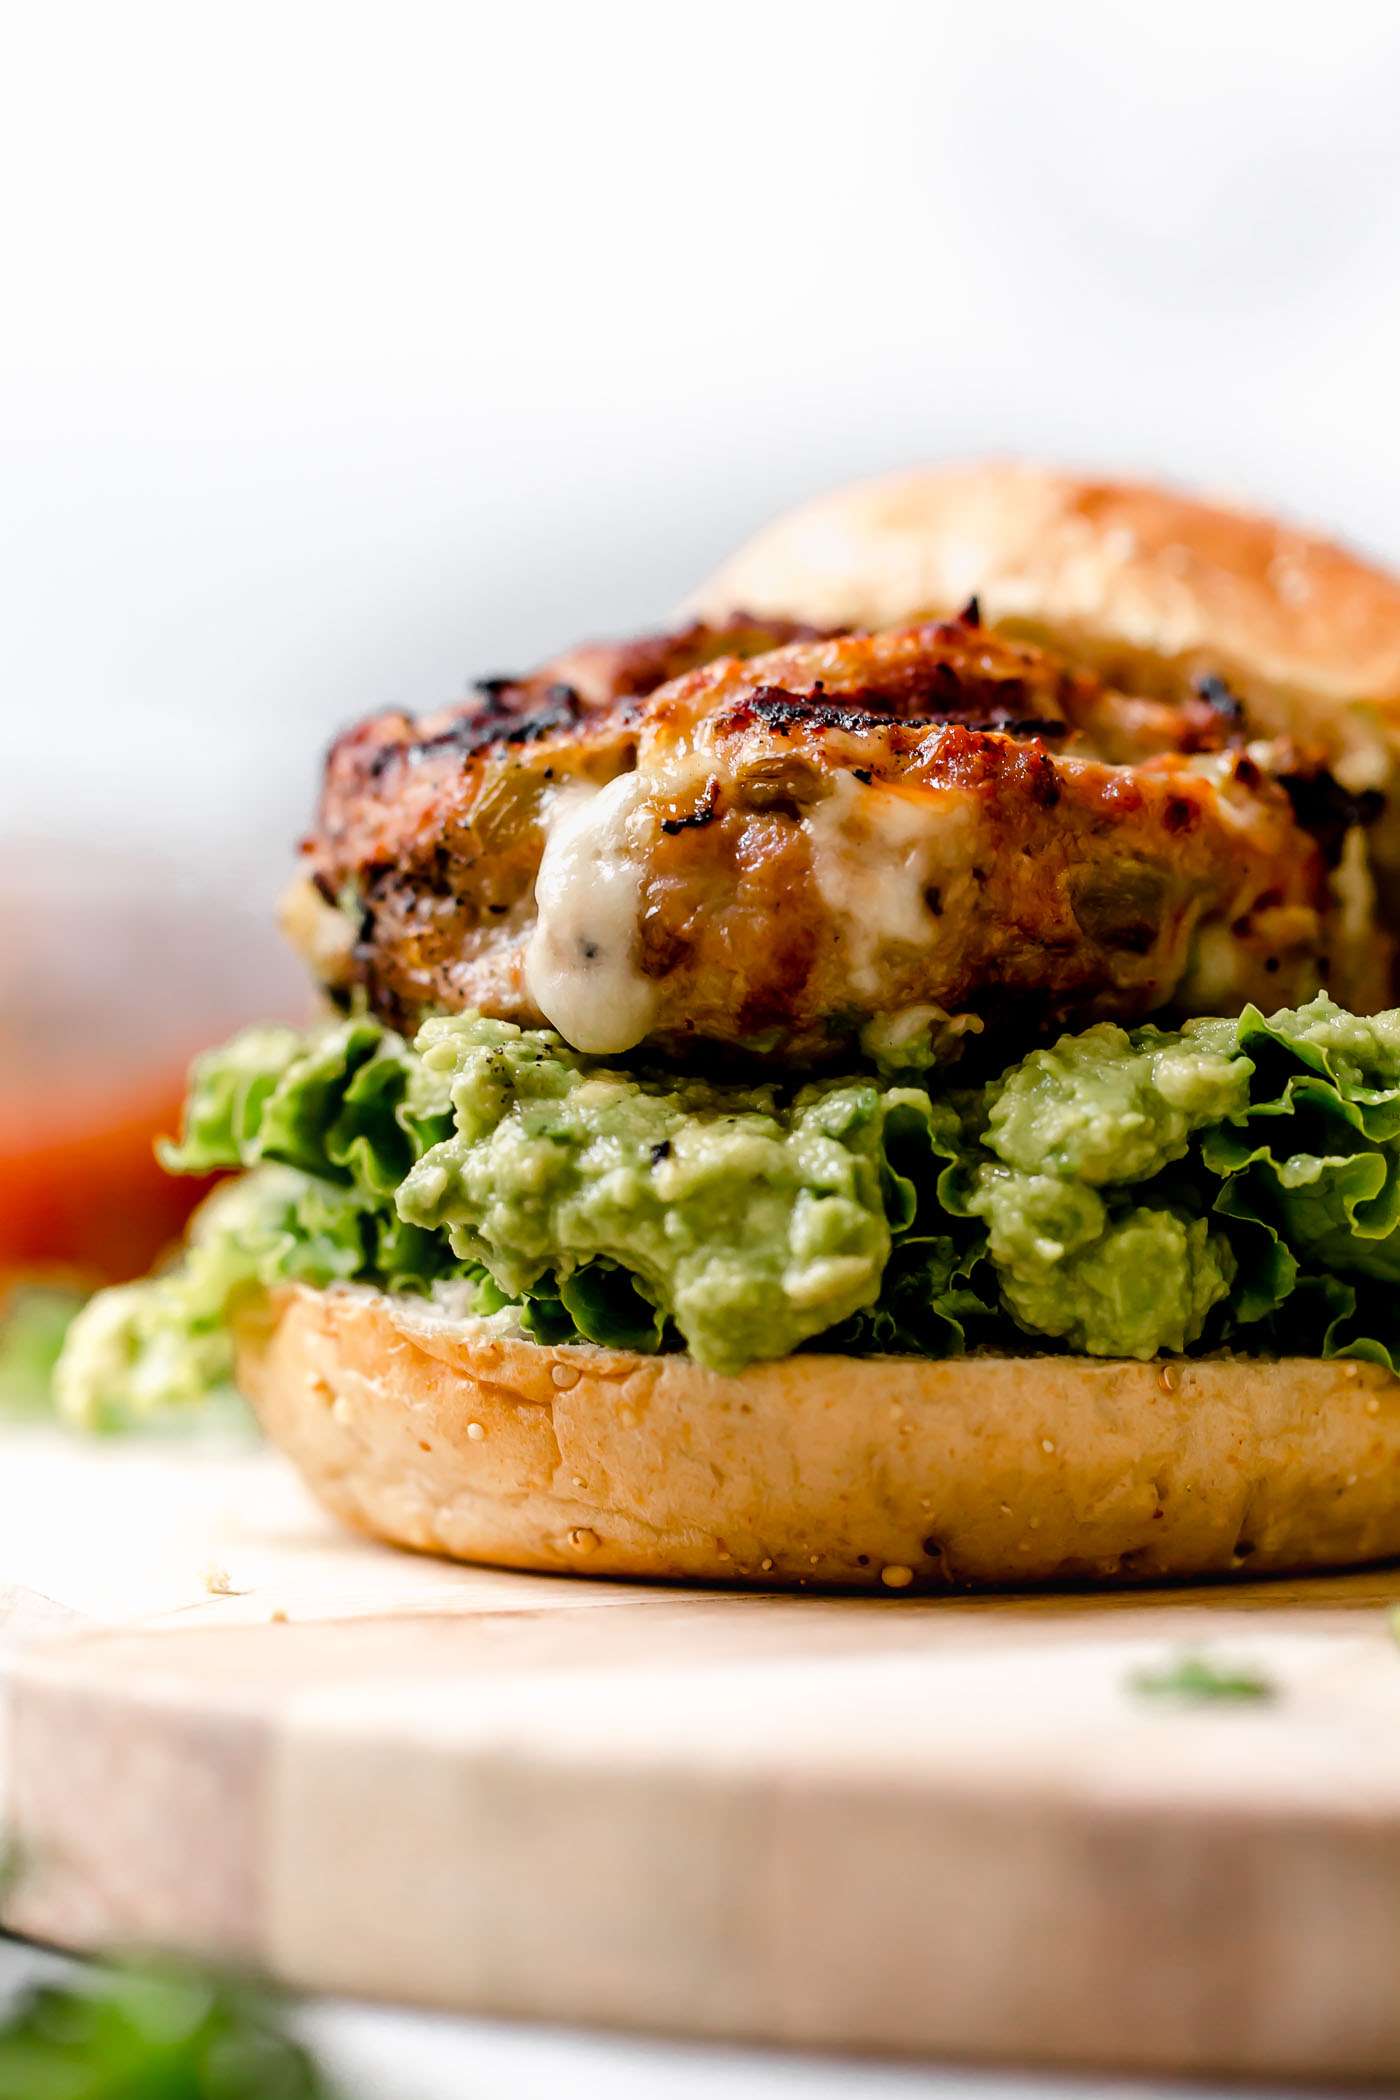 Zoomed in image of stuffed Southwest Turkey Burger place on a burger bun with lettuce & guacamole. Burger is sitting on a light wood board.